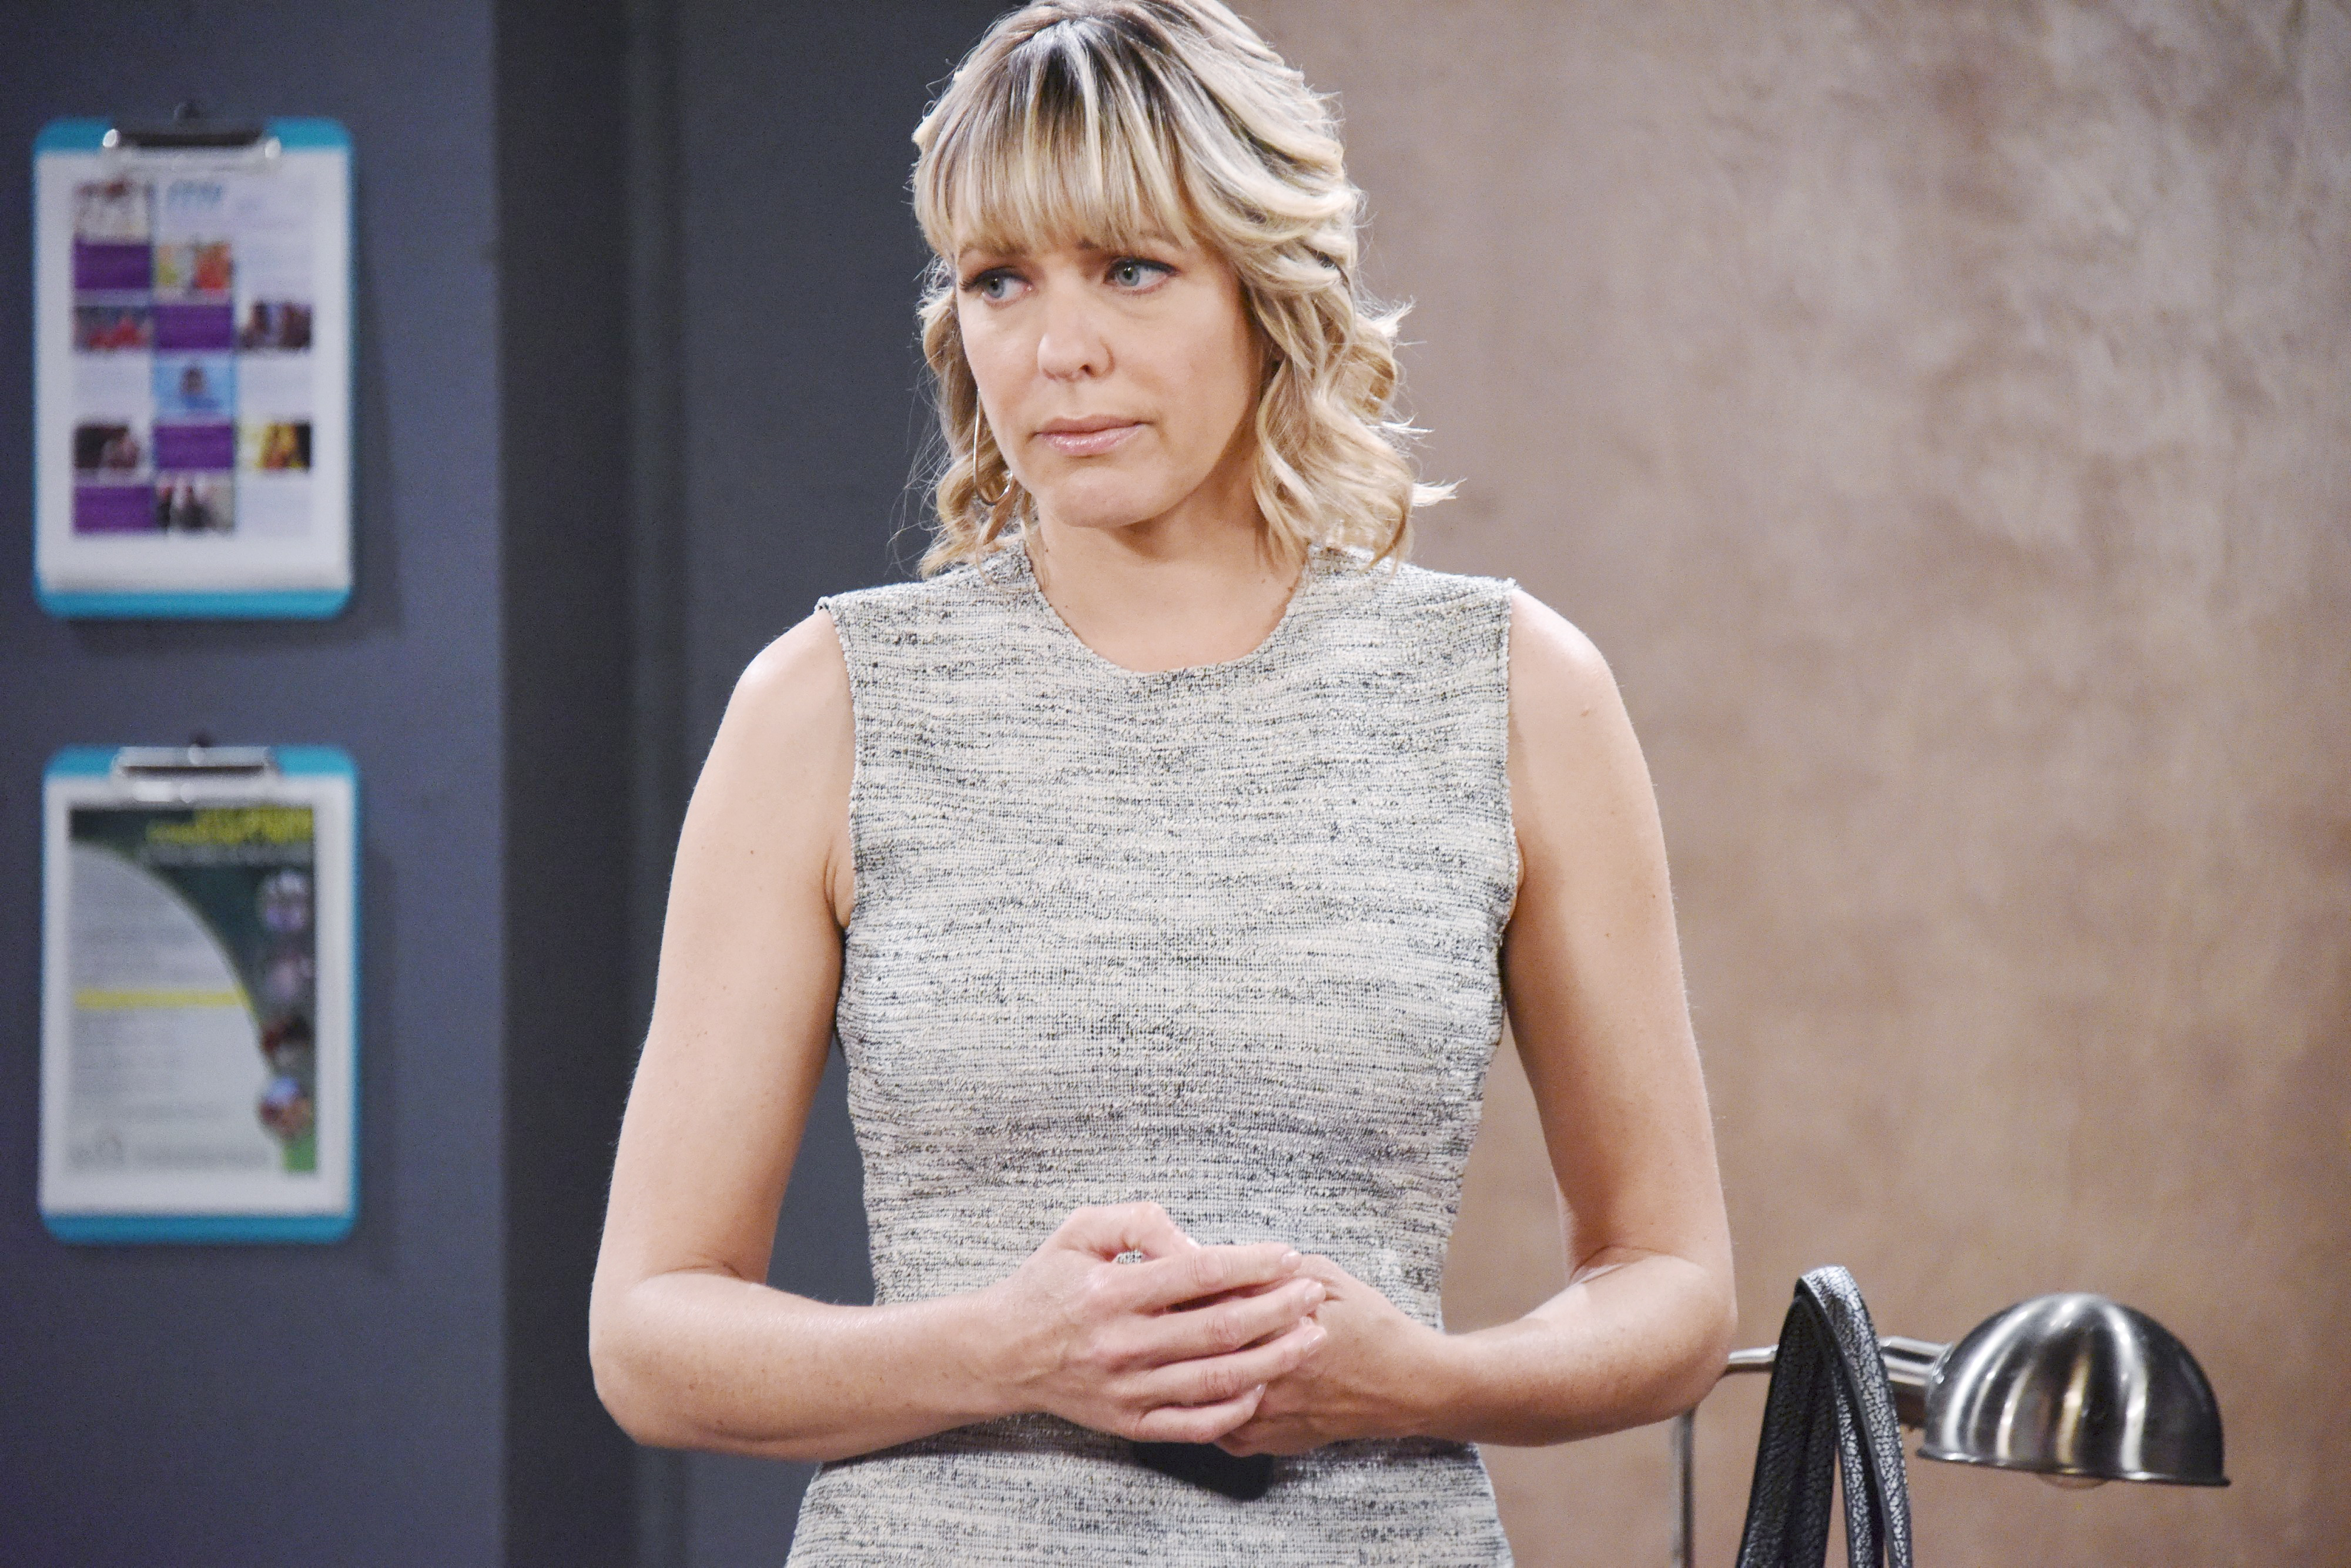 DAYS OF OUR LIVES EPISODE 13115